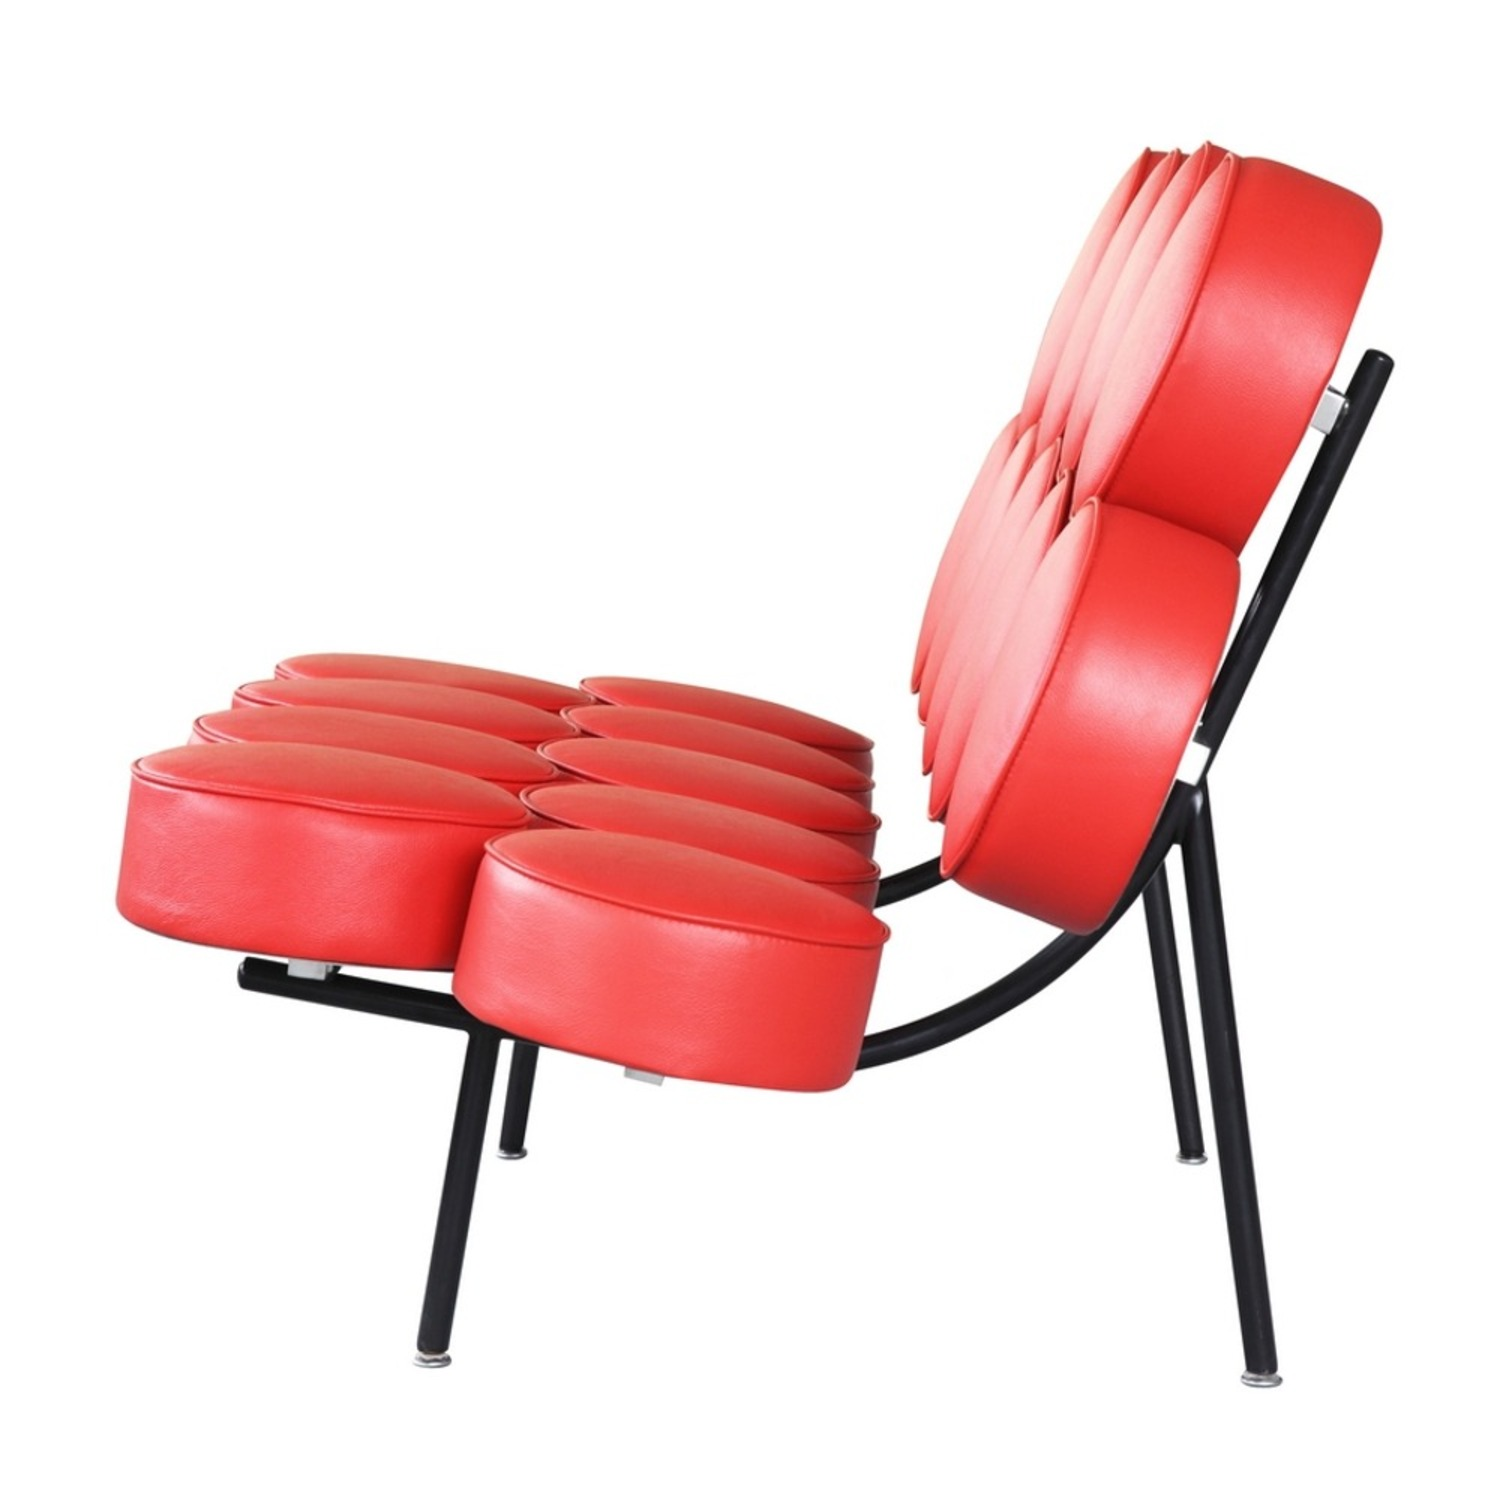 Sofa In Red Leather W/ Circle Seat & Back Design - image-3